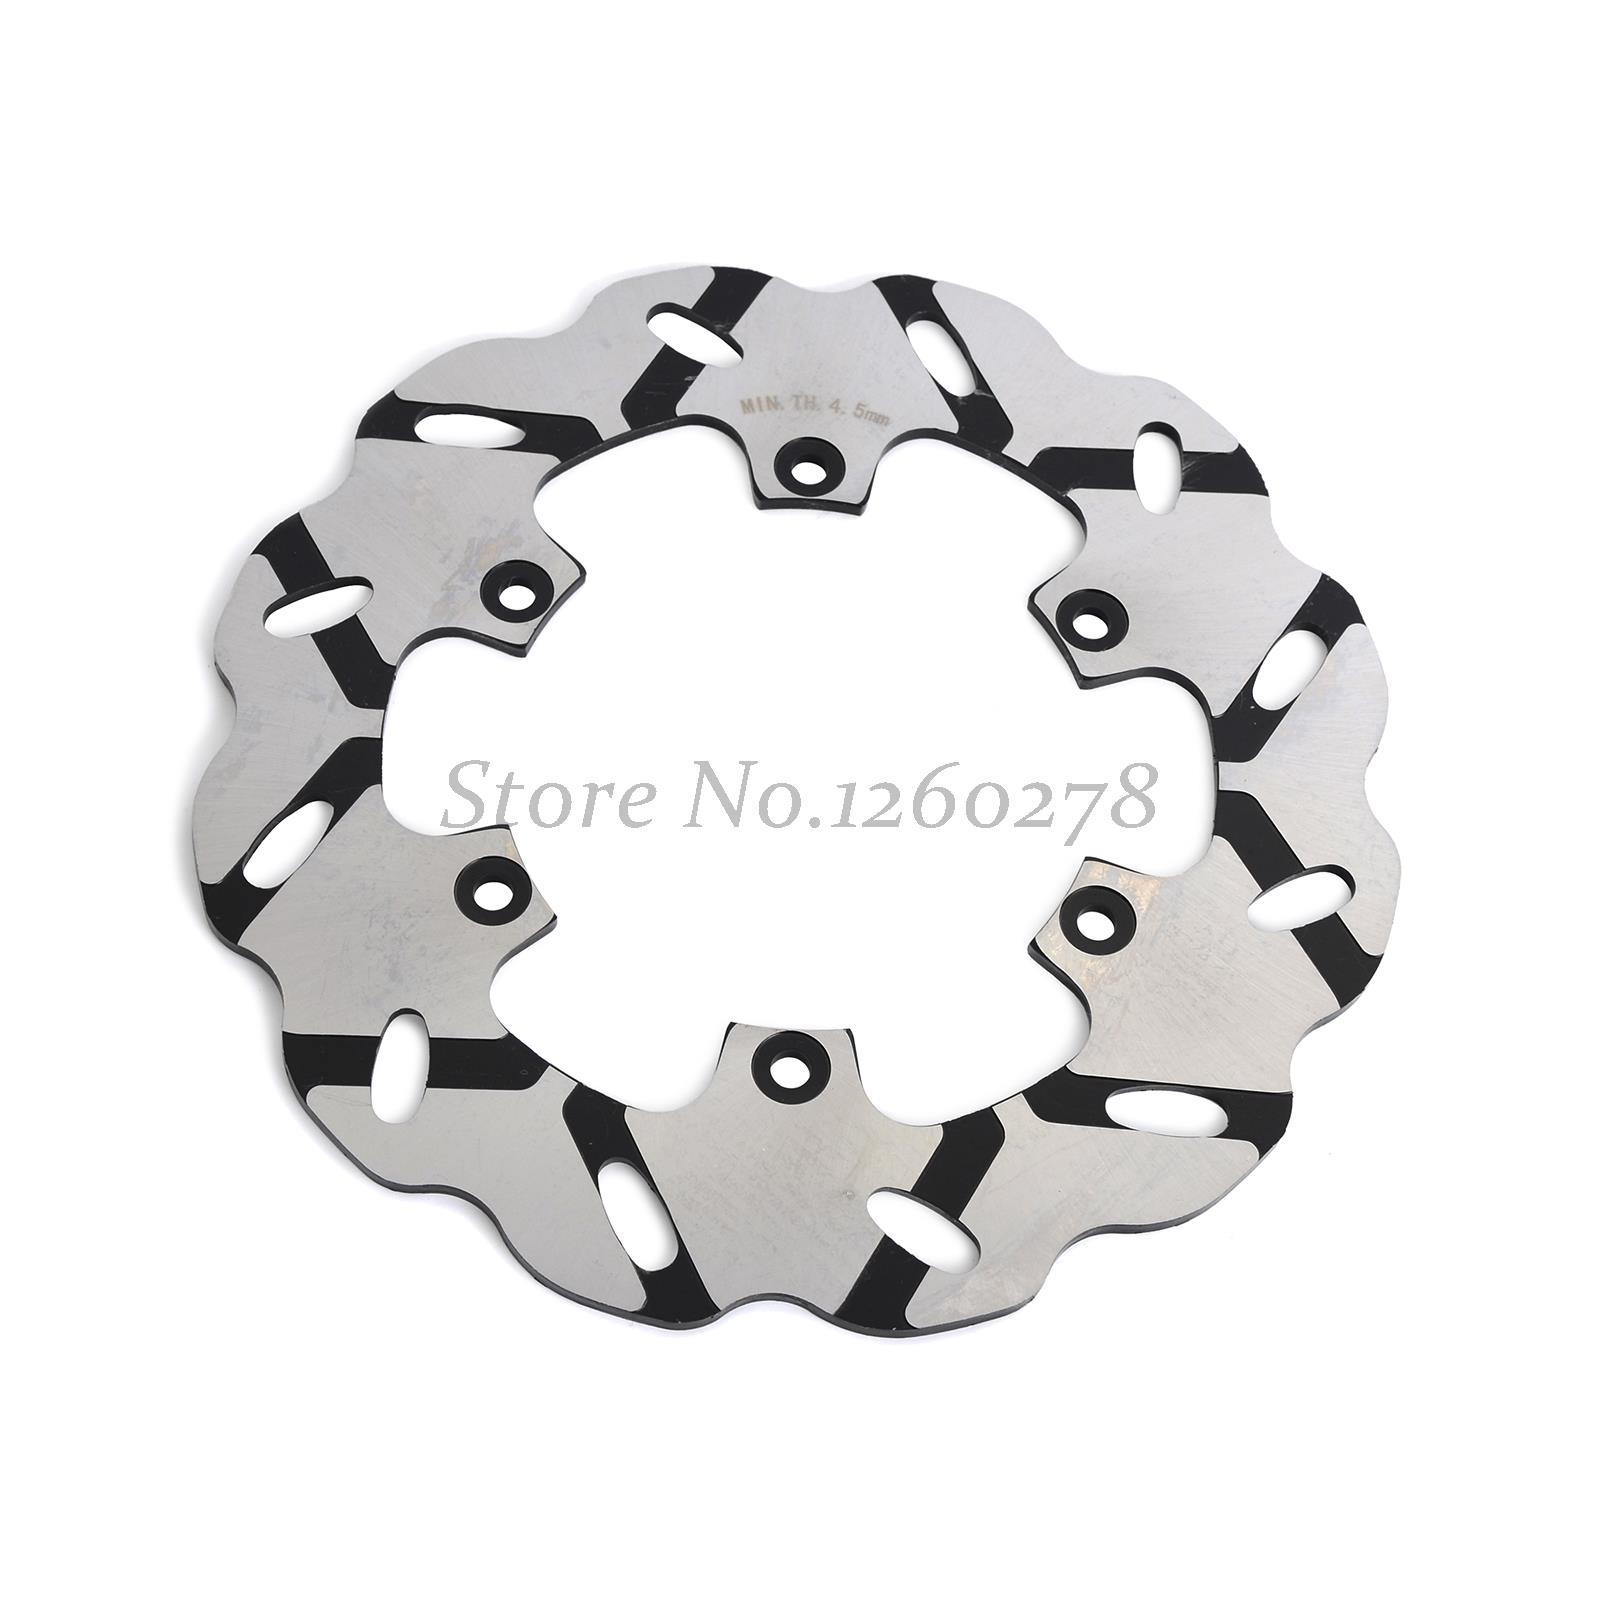 Motorcycle Rear Brake Disc Rotor For Yamaha RZ 250 R 1AR 1XG 29L